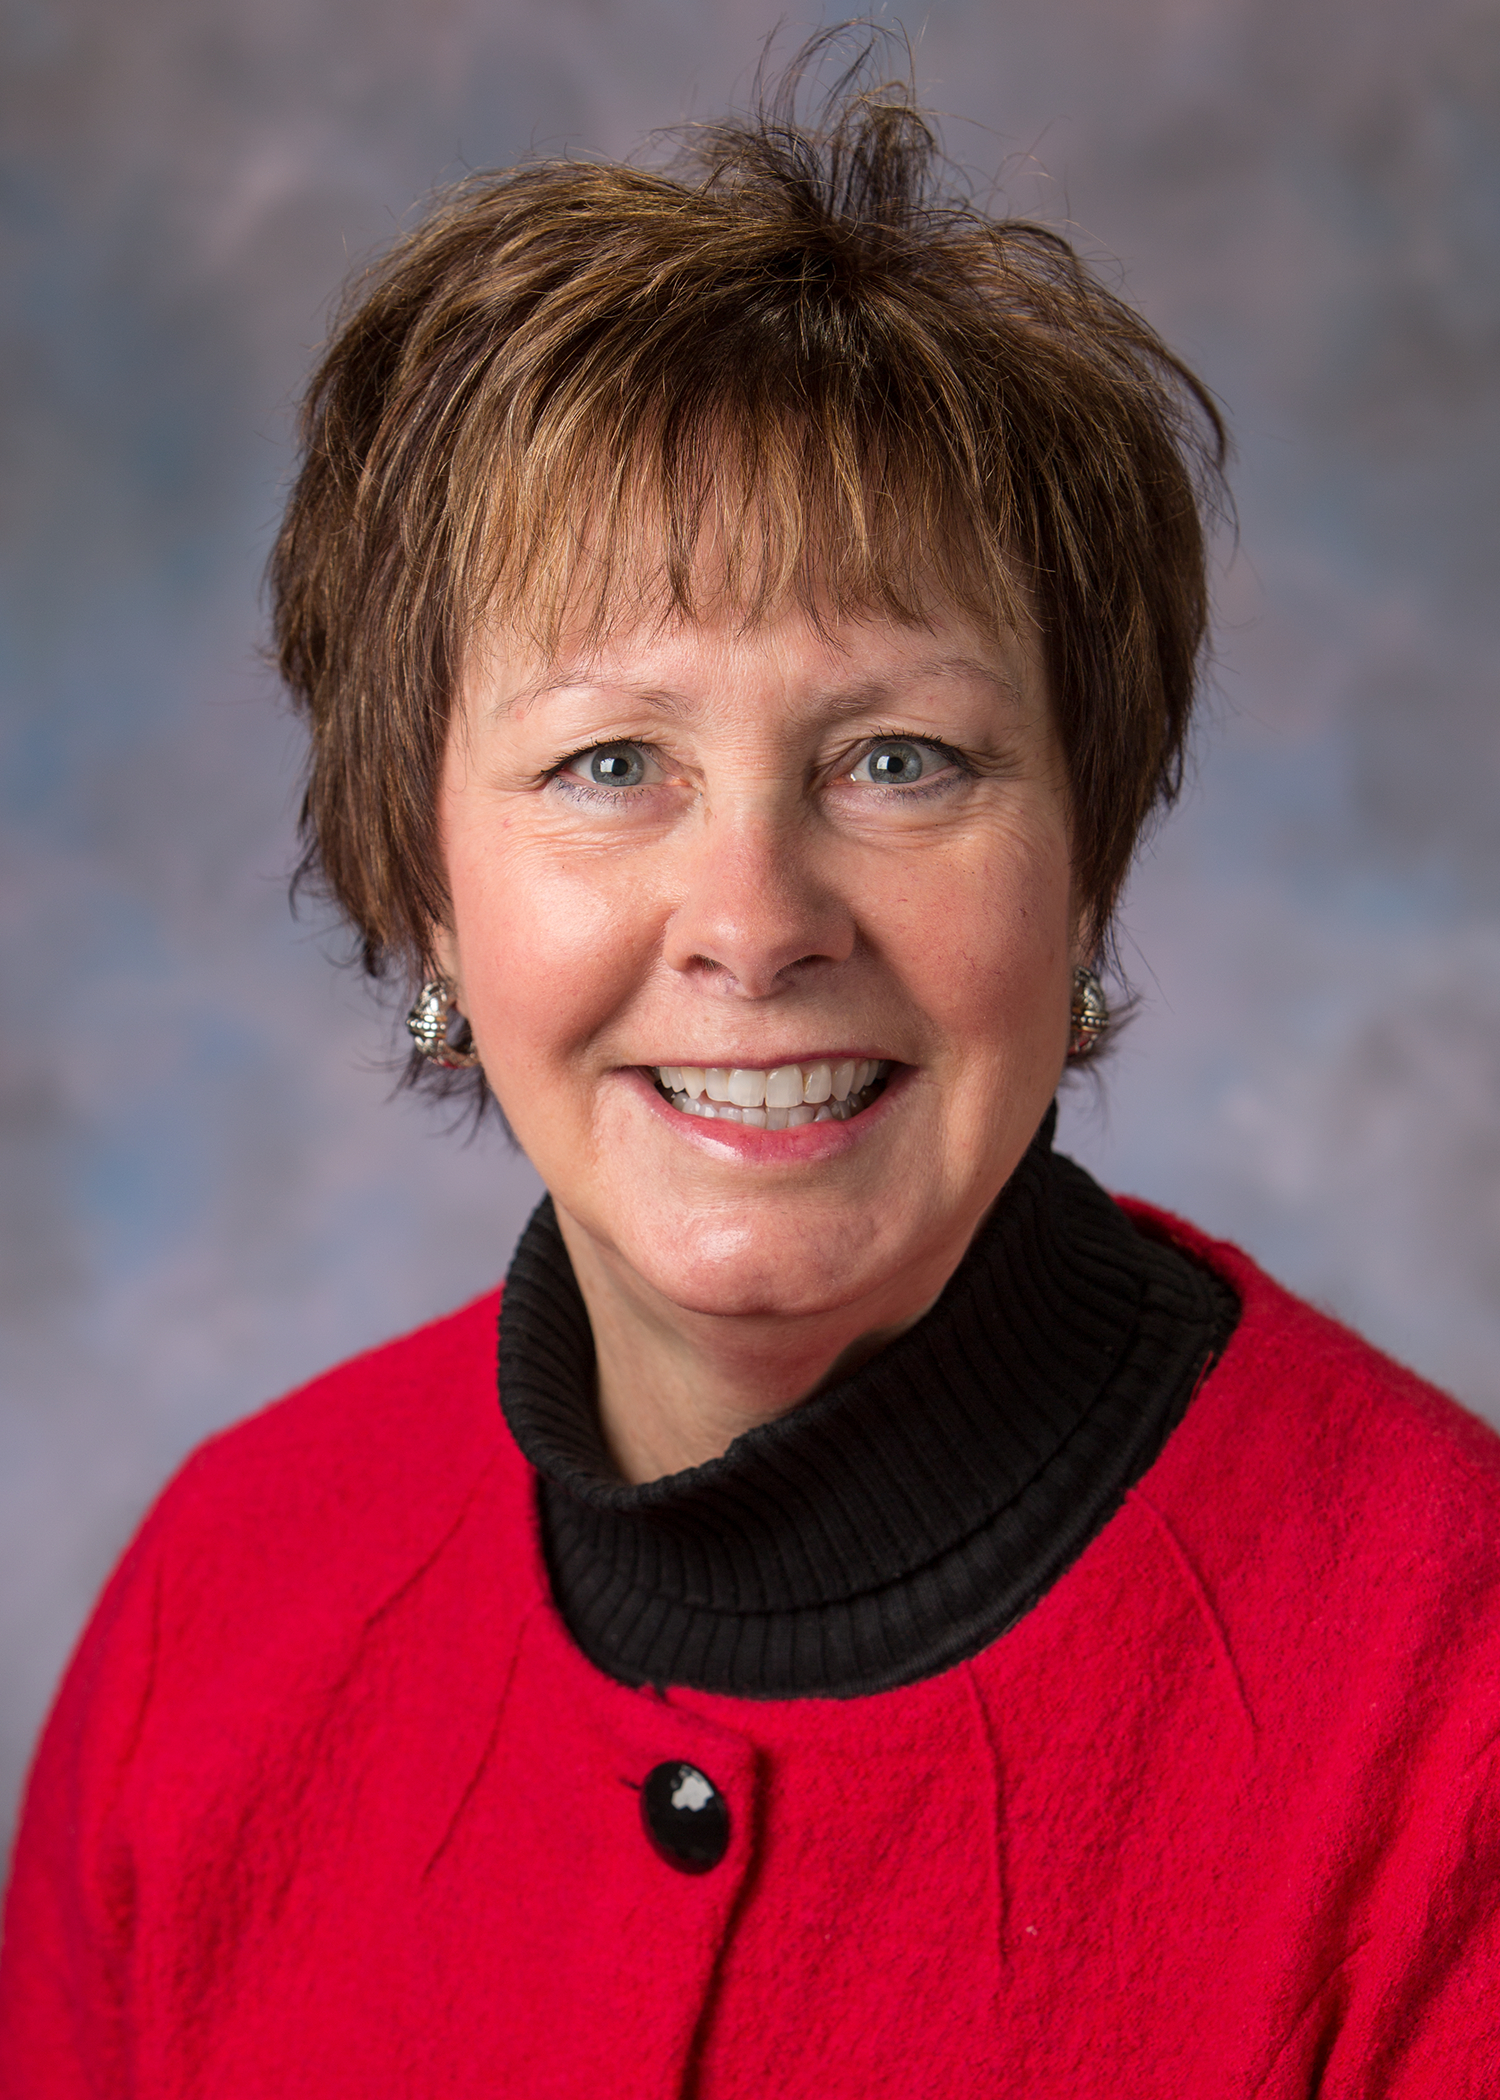 Lee Ann Wallace, RN, MBA, NEA-BC, Named Chief Nursing Officer at Nationwide Children's Hospital